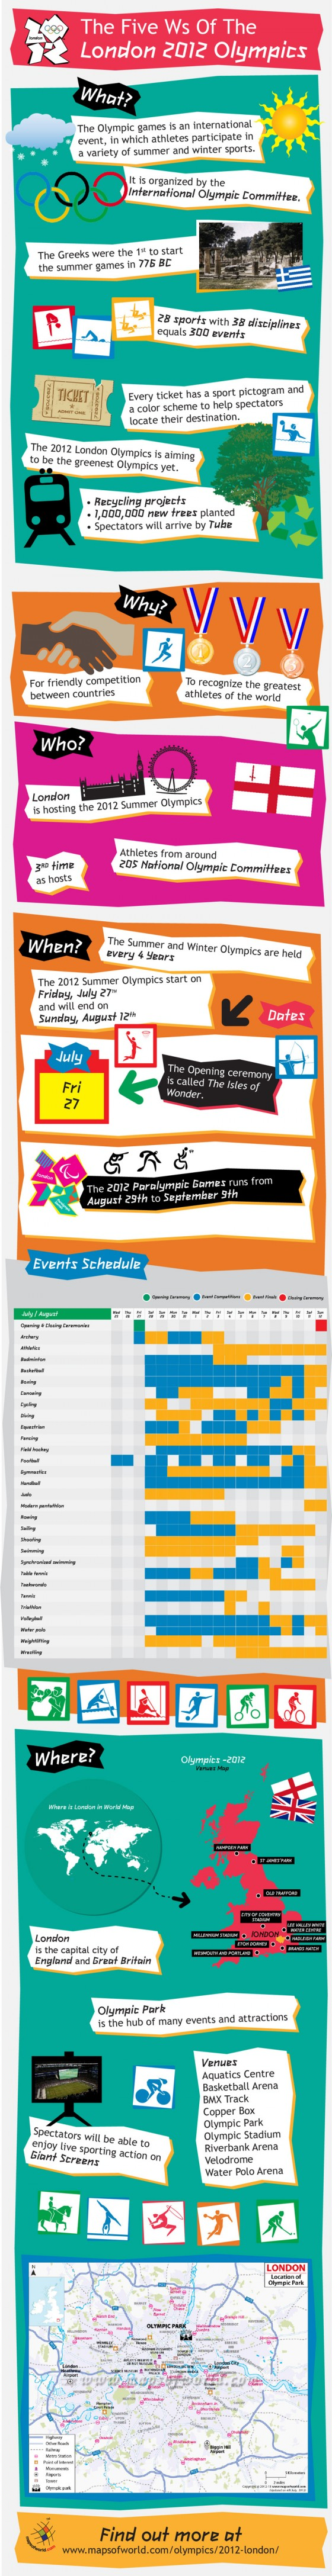 london olympics infographic revised 560x4351